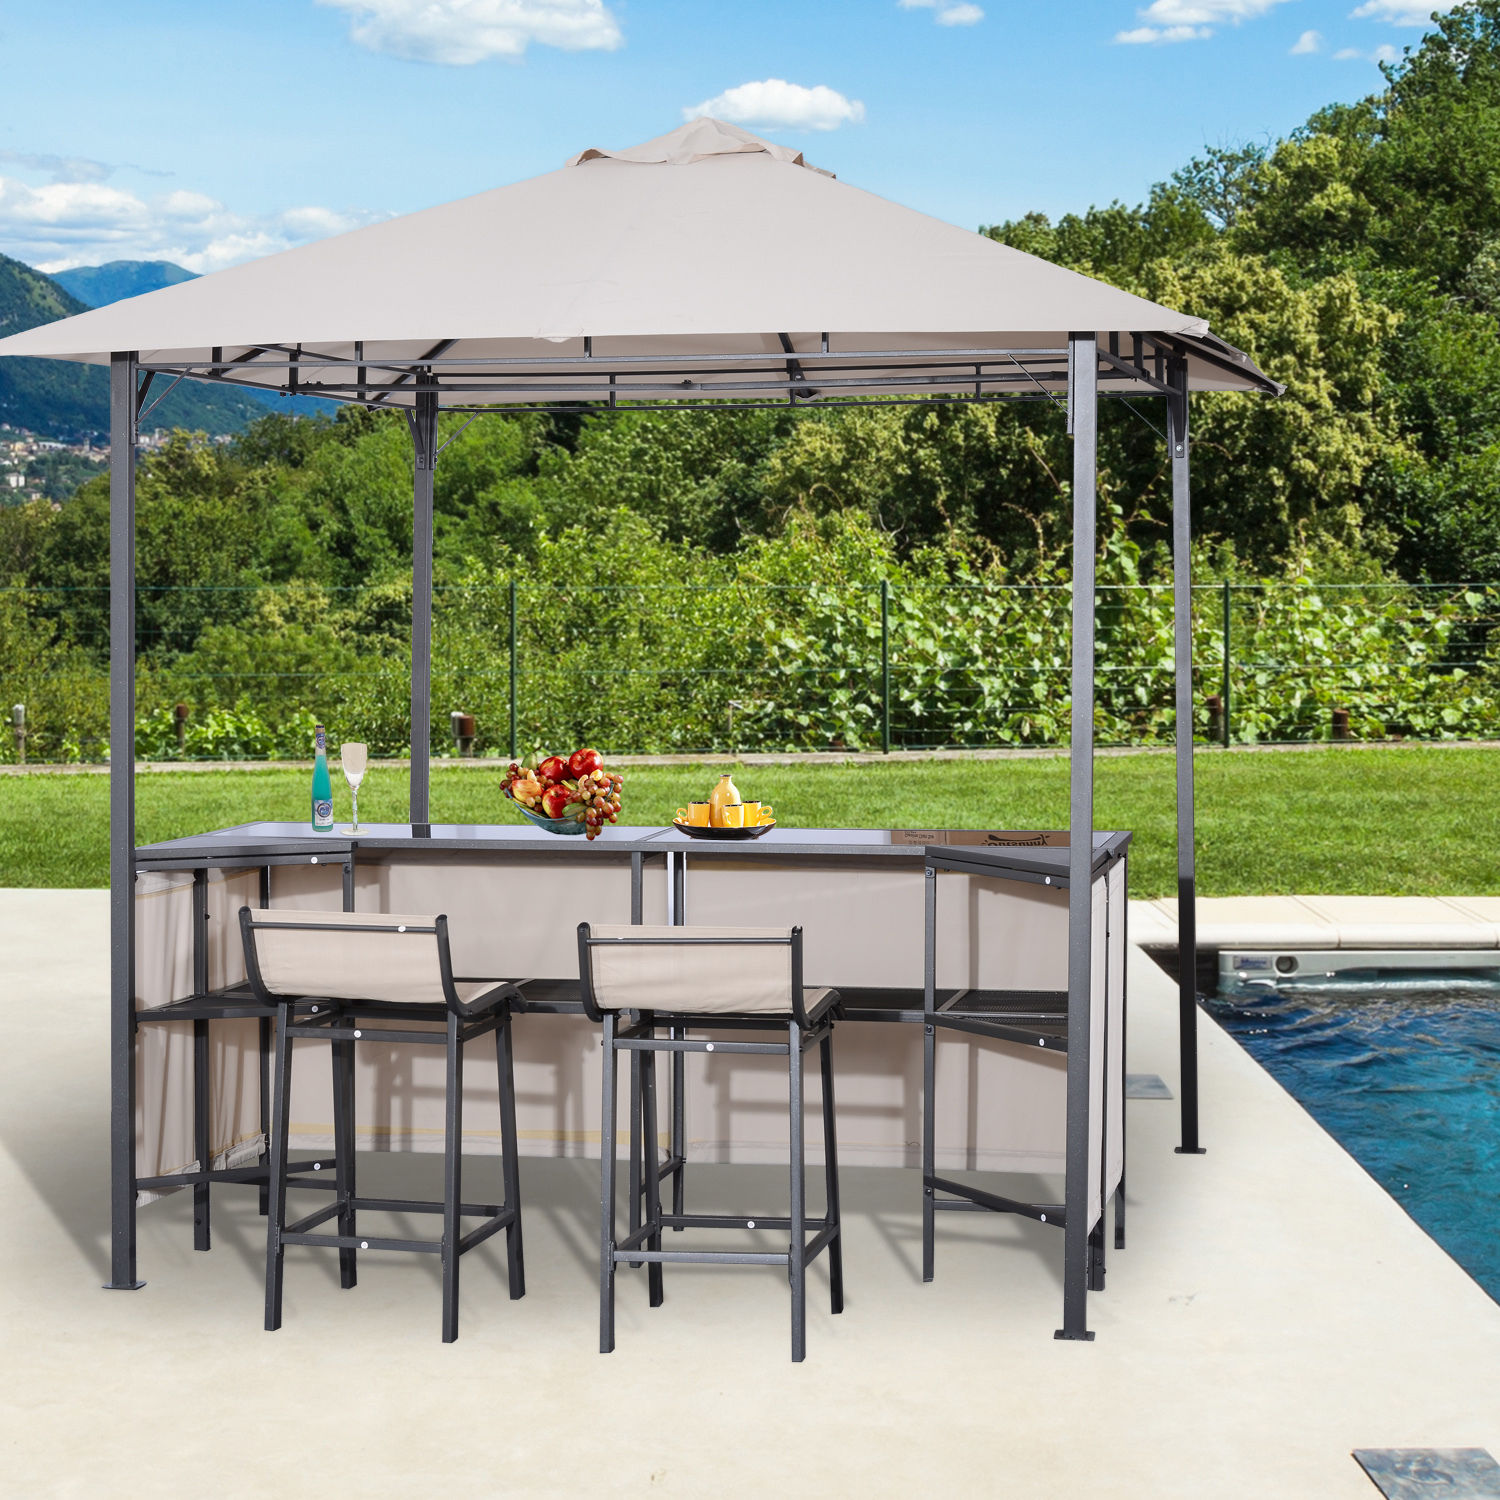 Super Details About Outsunny Outdoor Bar Table Set Cloth Canopy 2 Chairs Patio Backyard Furniture Machost Co Dining Chair Design Ideas Machostcouk